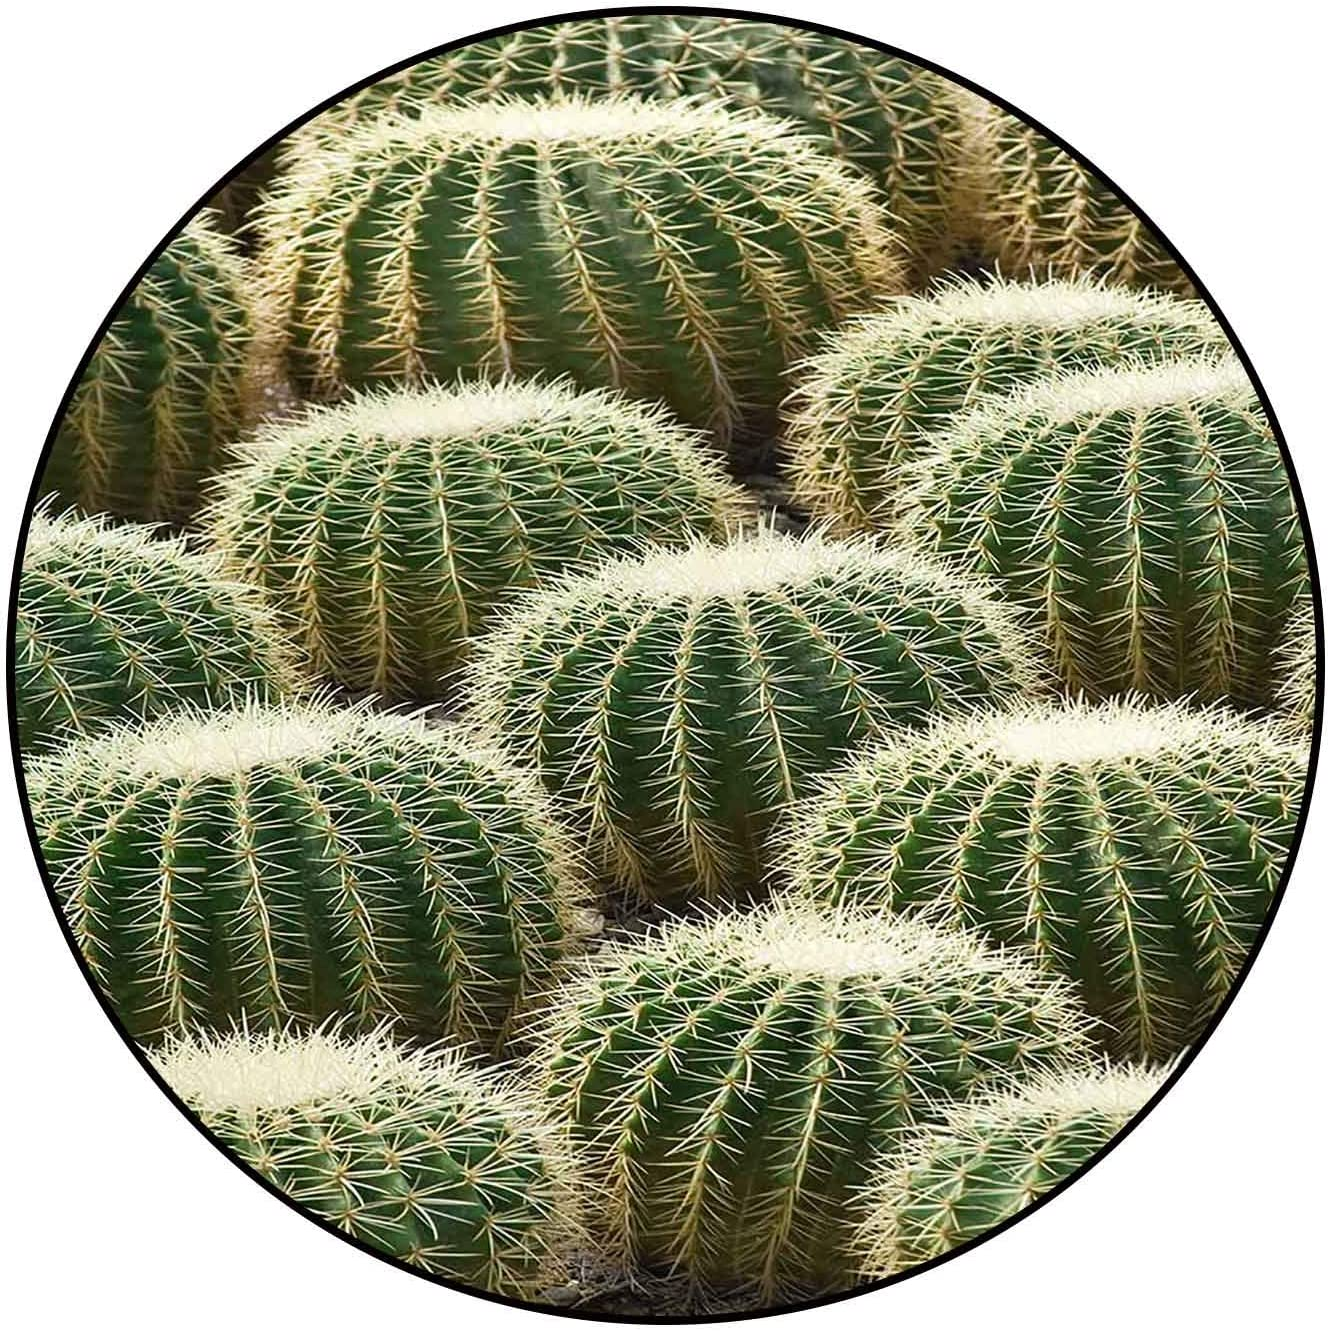 Great interest Classic Pattern Round Rug Don't miss the campaign Lots Non-Sk Washable Cactus 9417241 of